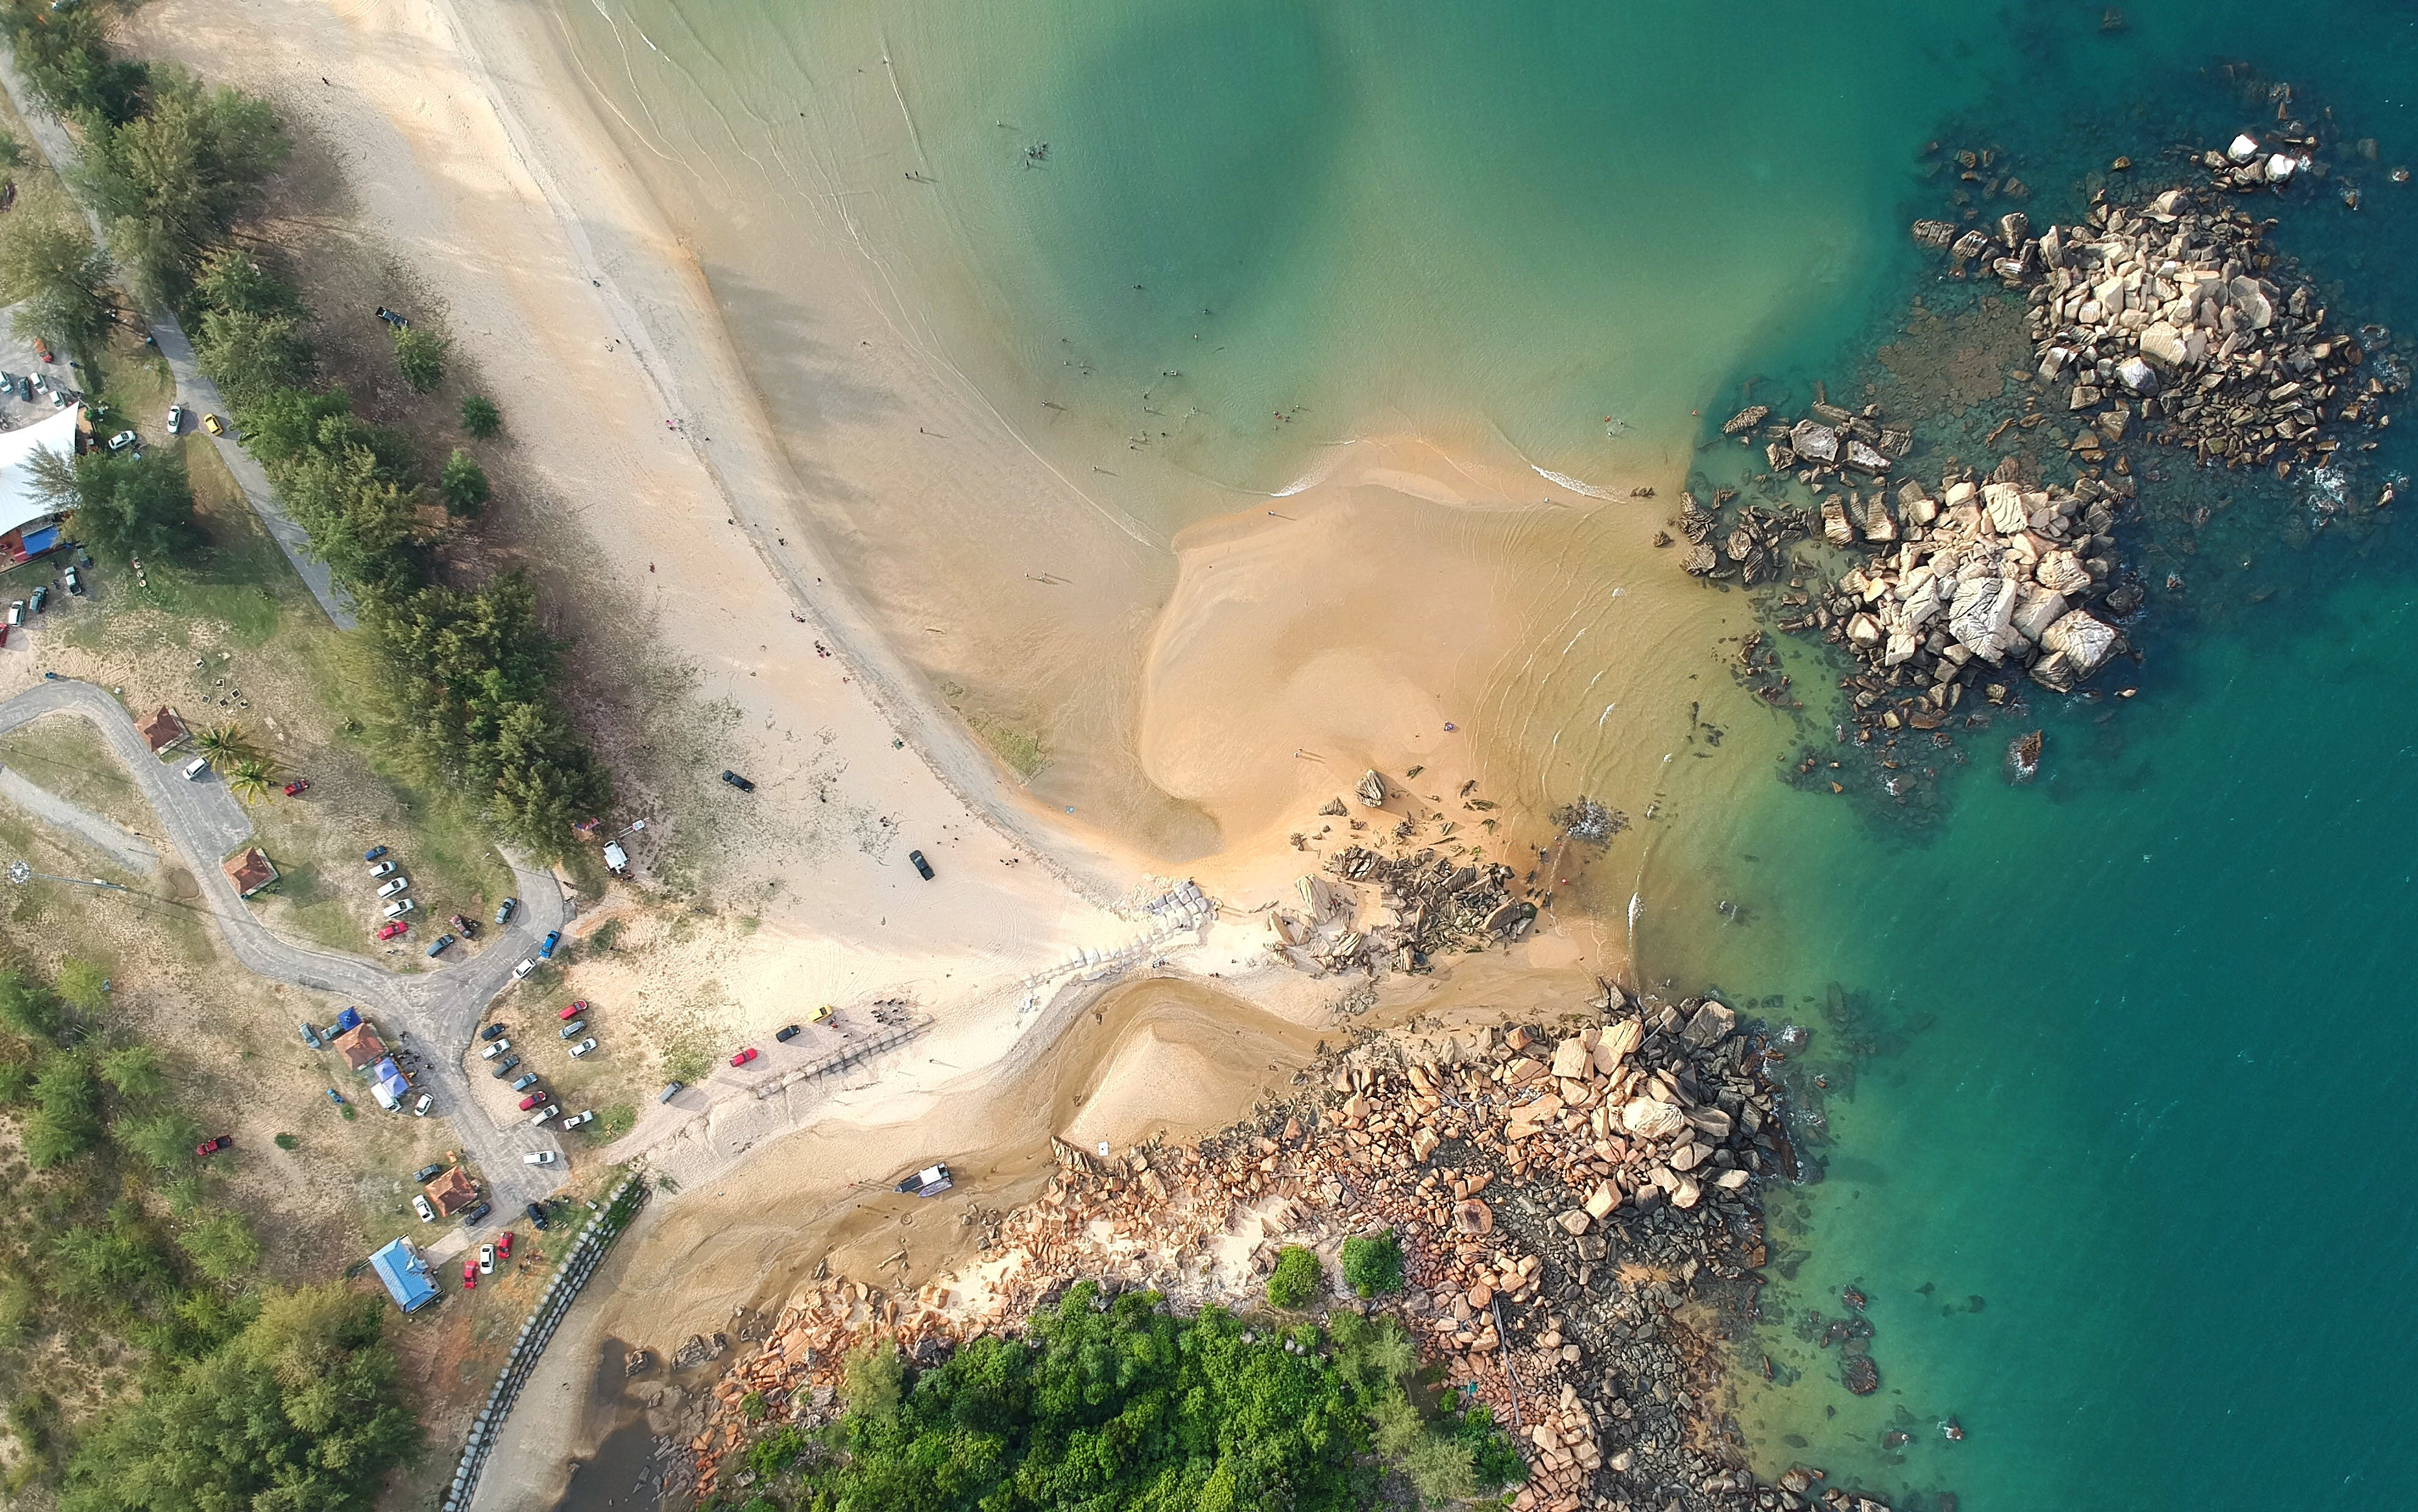 Aerial Photo of Rock Formation and Shoreline